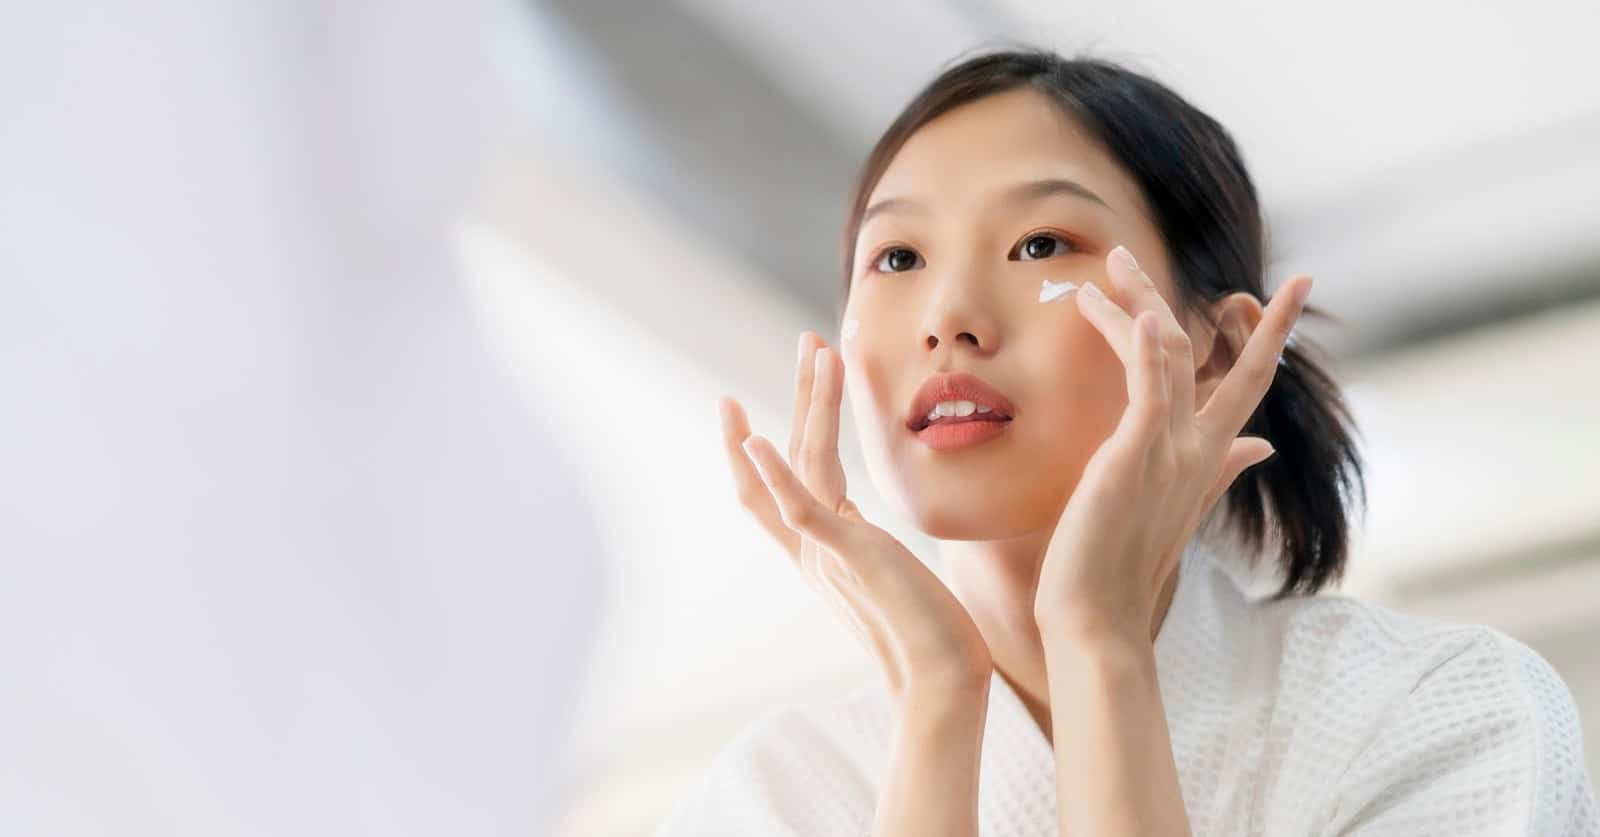 Korean skincare products, aka K-beauty, are becoming more and more popular across the US. Check out our top 10 favorite products!